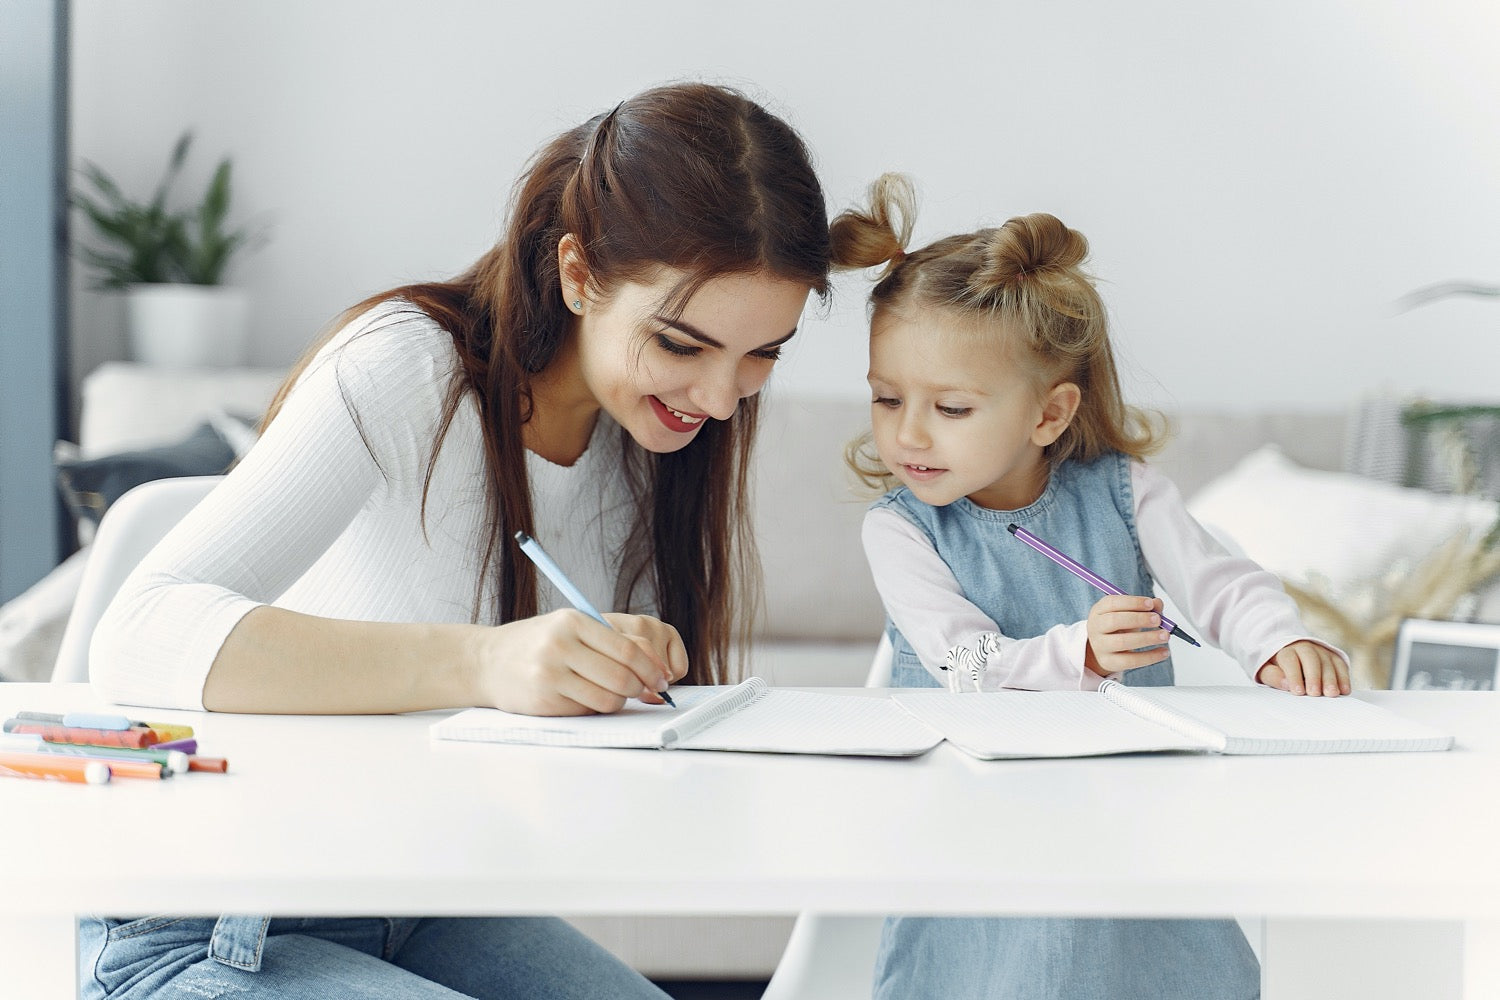 Mum and child studying together at home